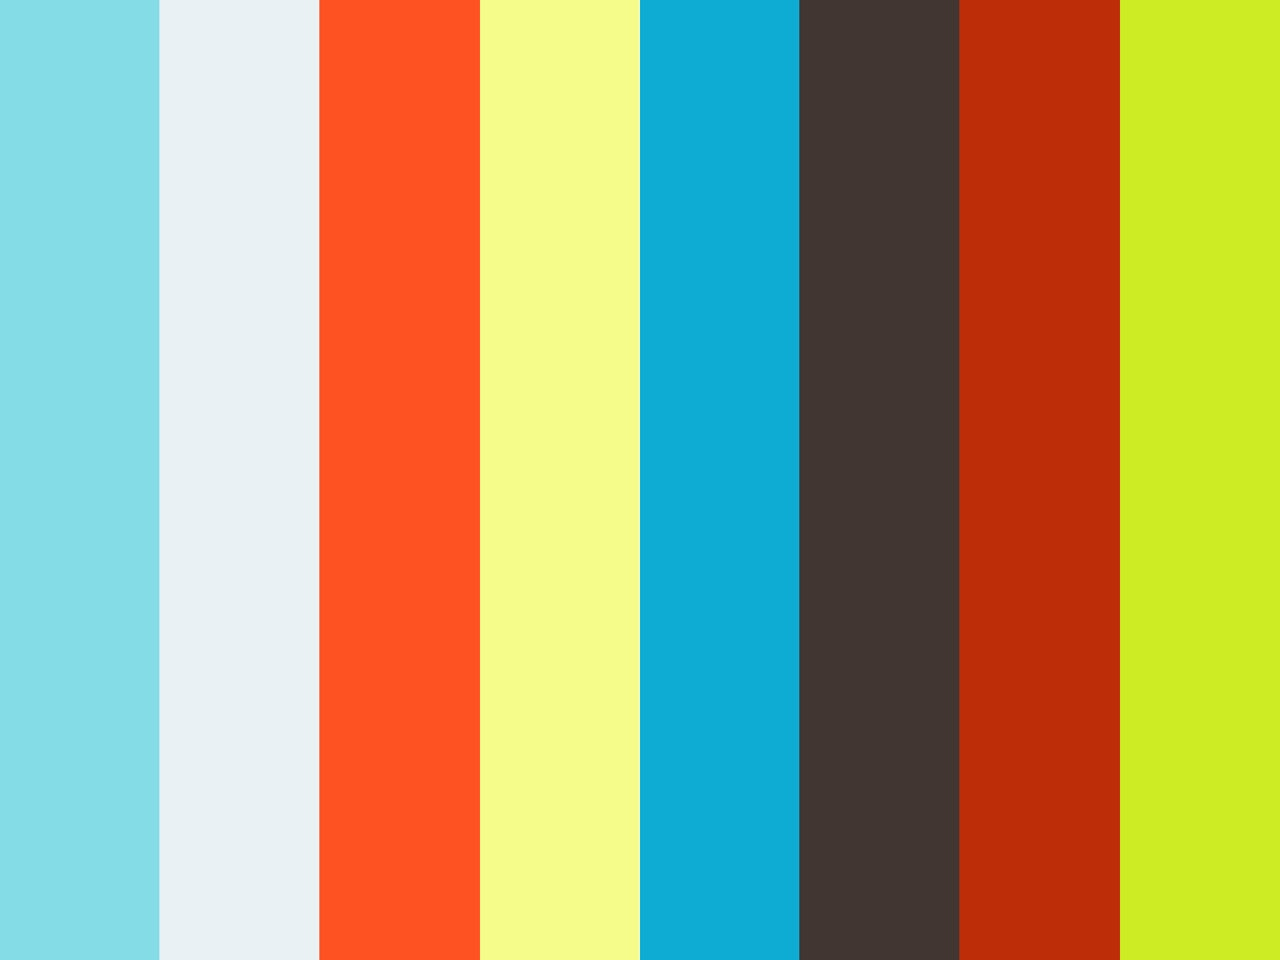 What Is the Risk of Anastomotic Leak Following Repeat Intestinal Resection in Patients with Crohn's Disease? 2017